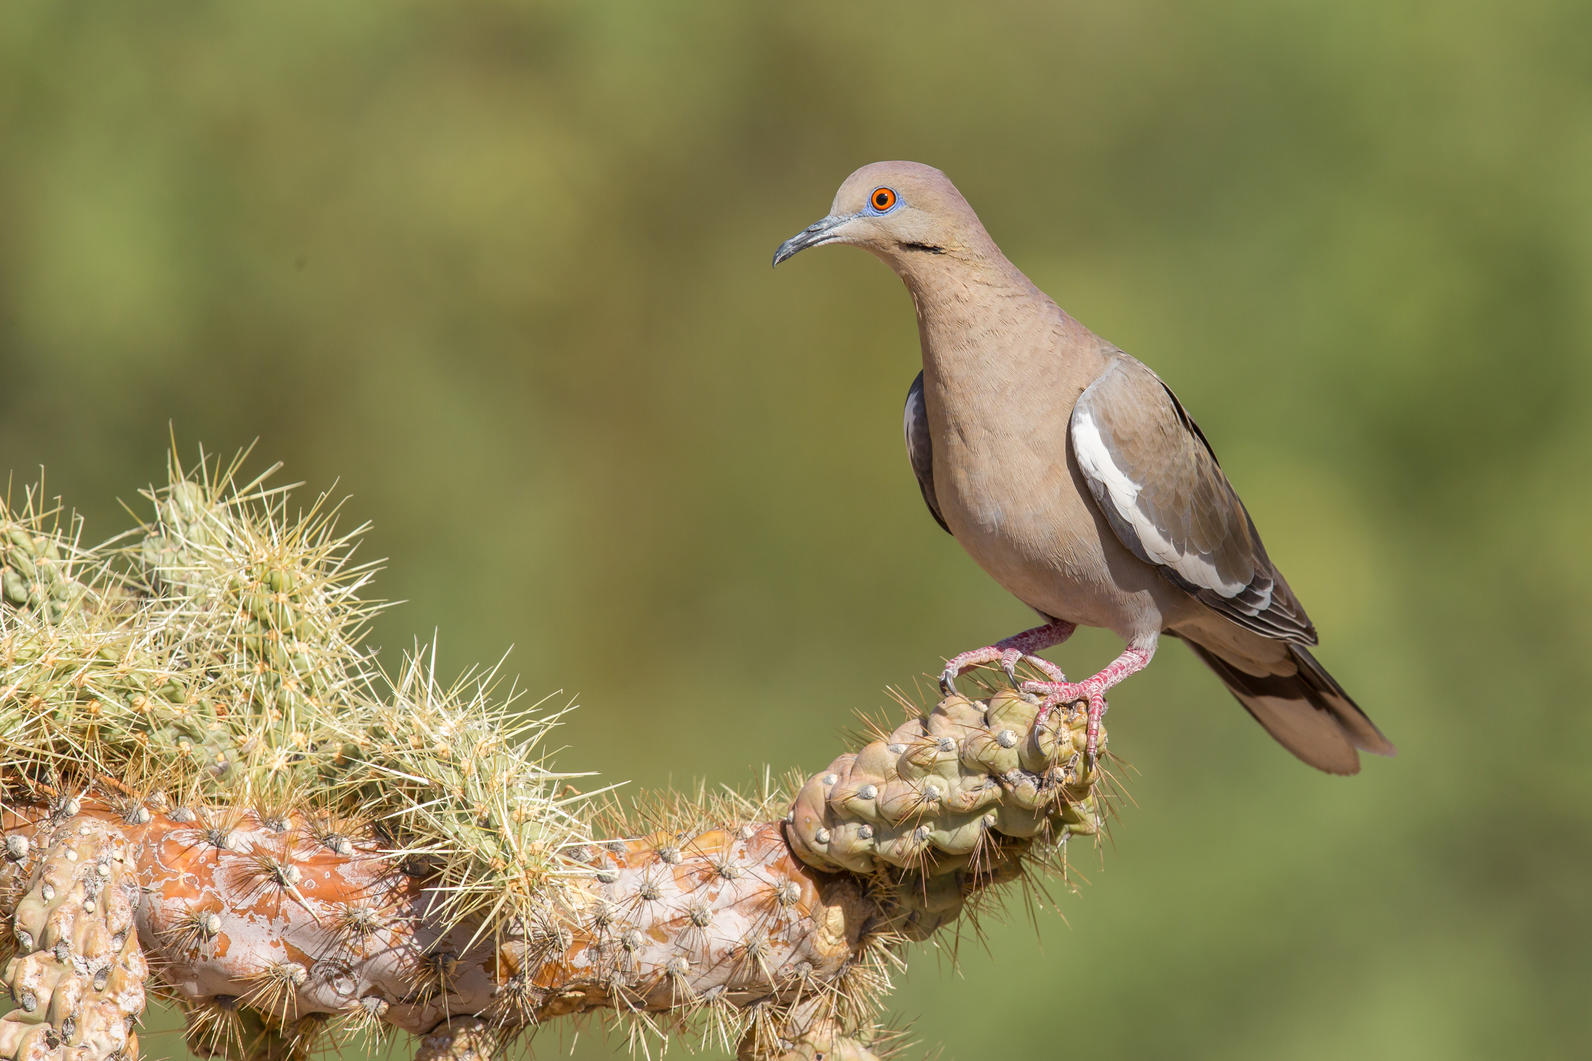 White-winged Dove perched on Cholla branch